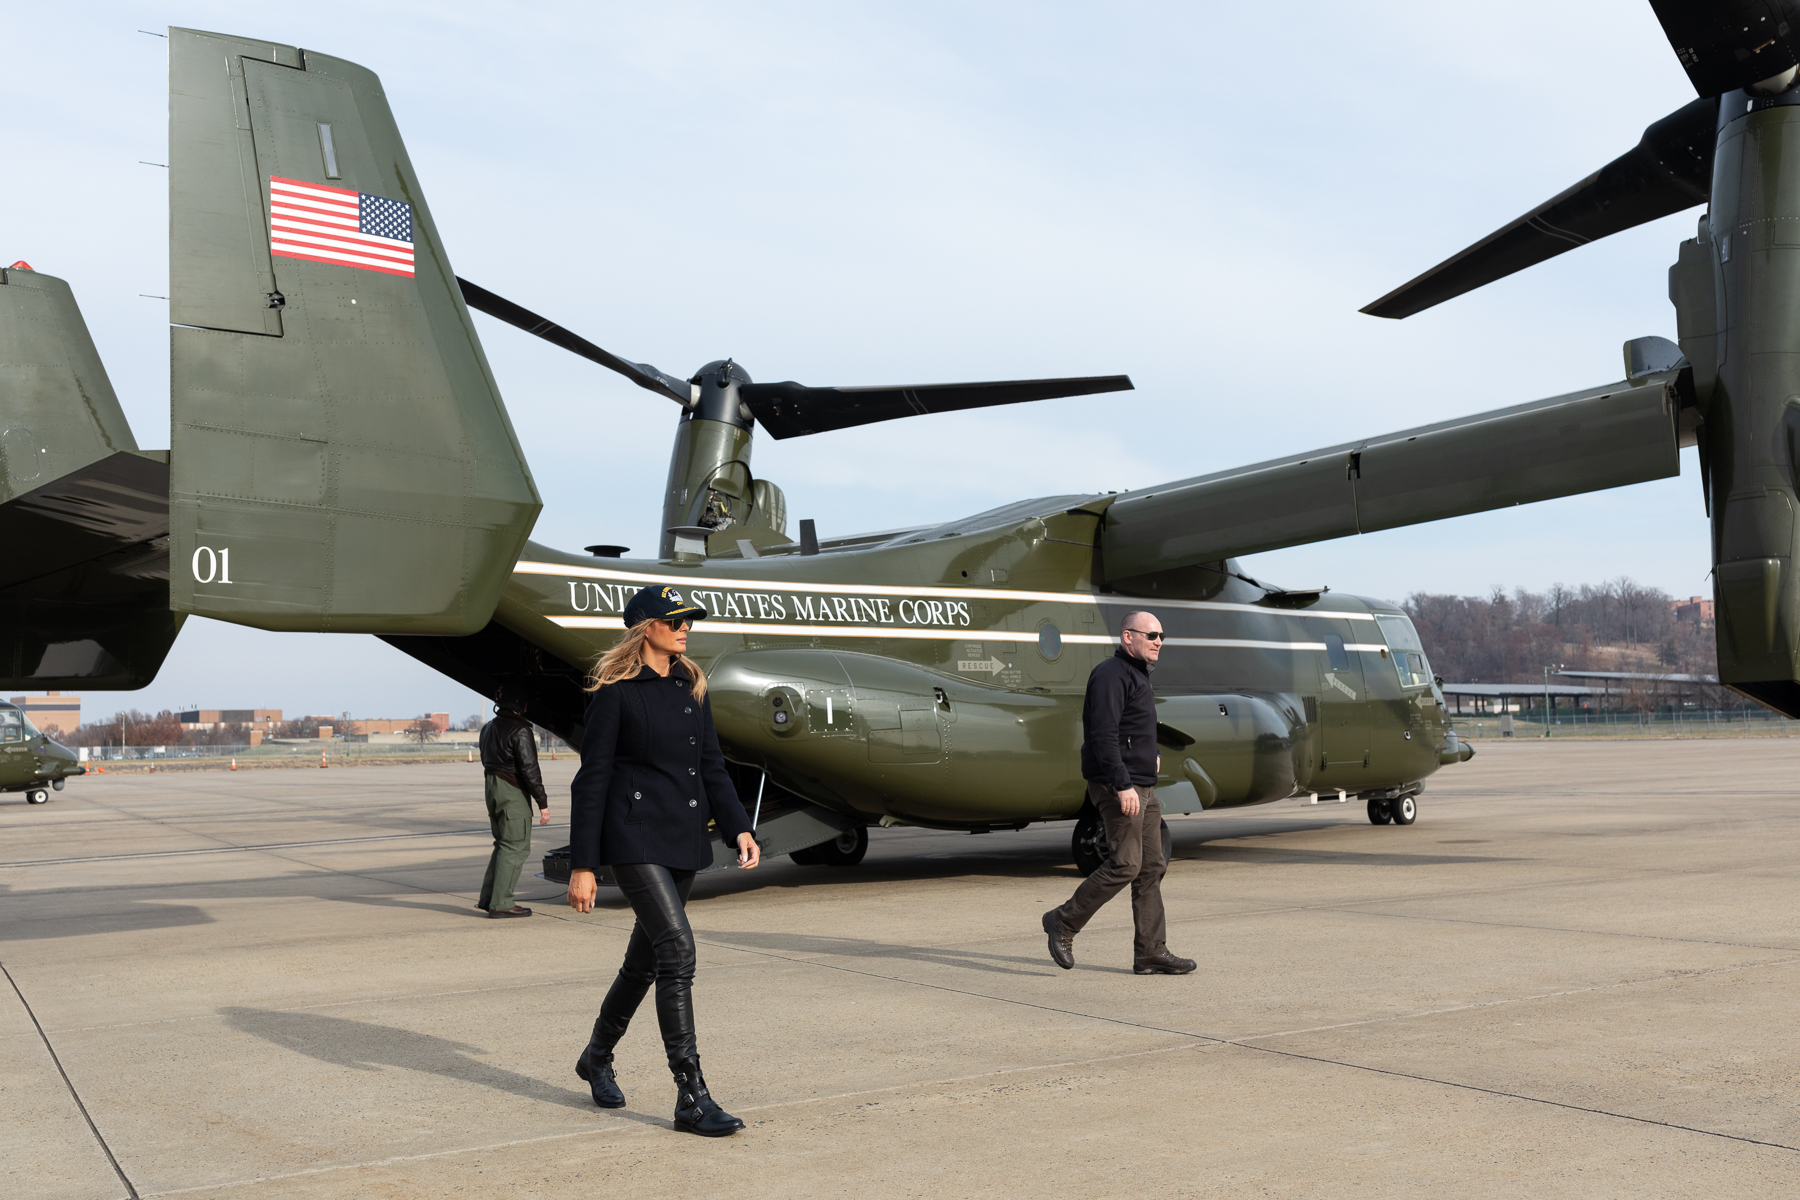 First lady Melania Trump departs a Marine Corps V-22 Osprey support aircraft at Joint Base Andrews, Md., on Dec. 12, 2018, following a holiday visit aboard USS George H.W. Bush. (Andrea Hanks/White House)